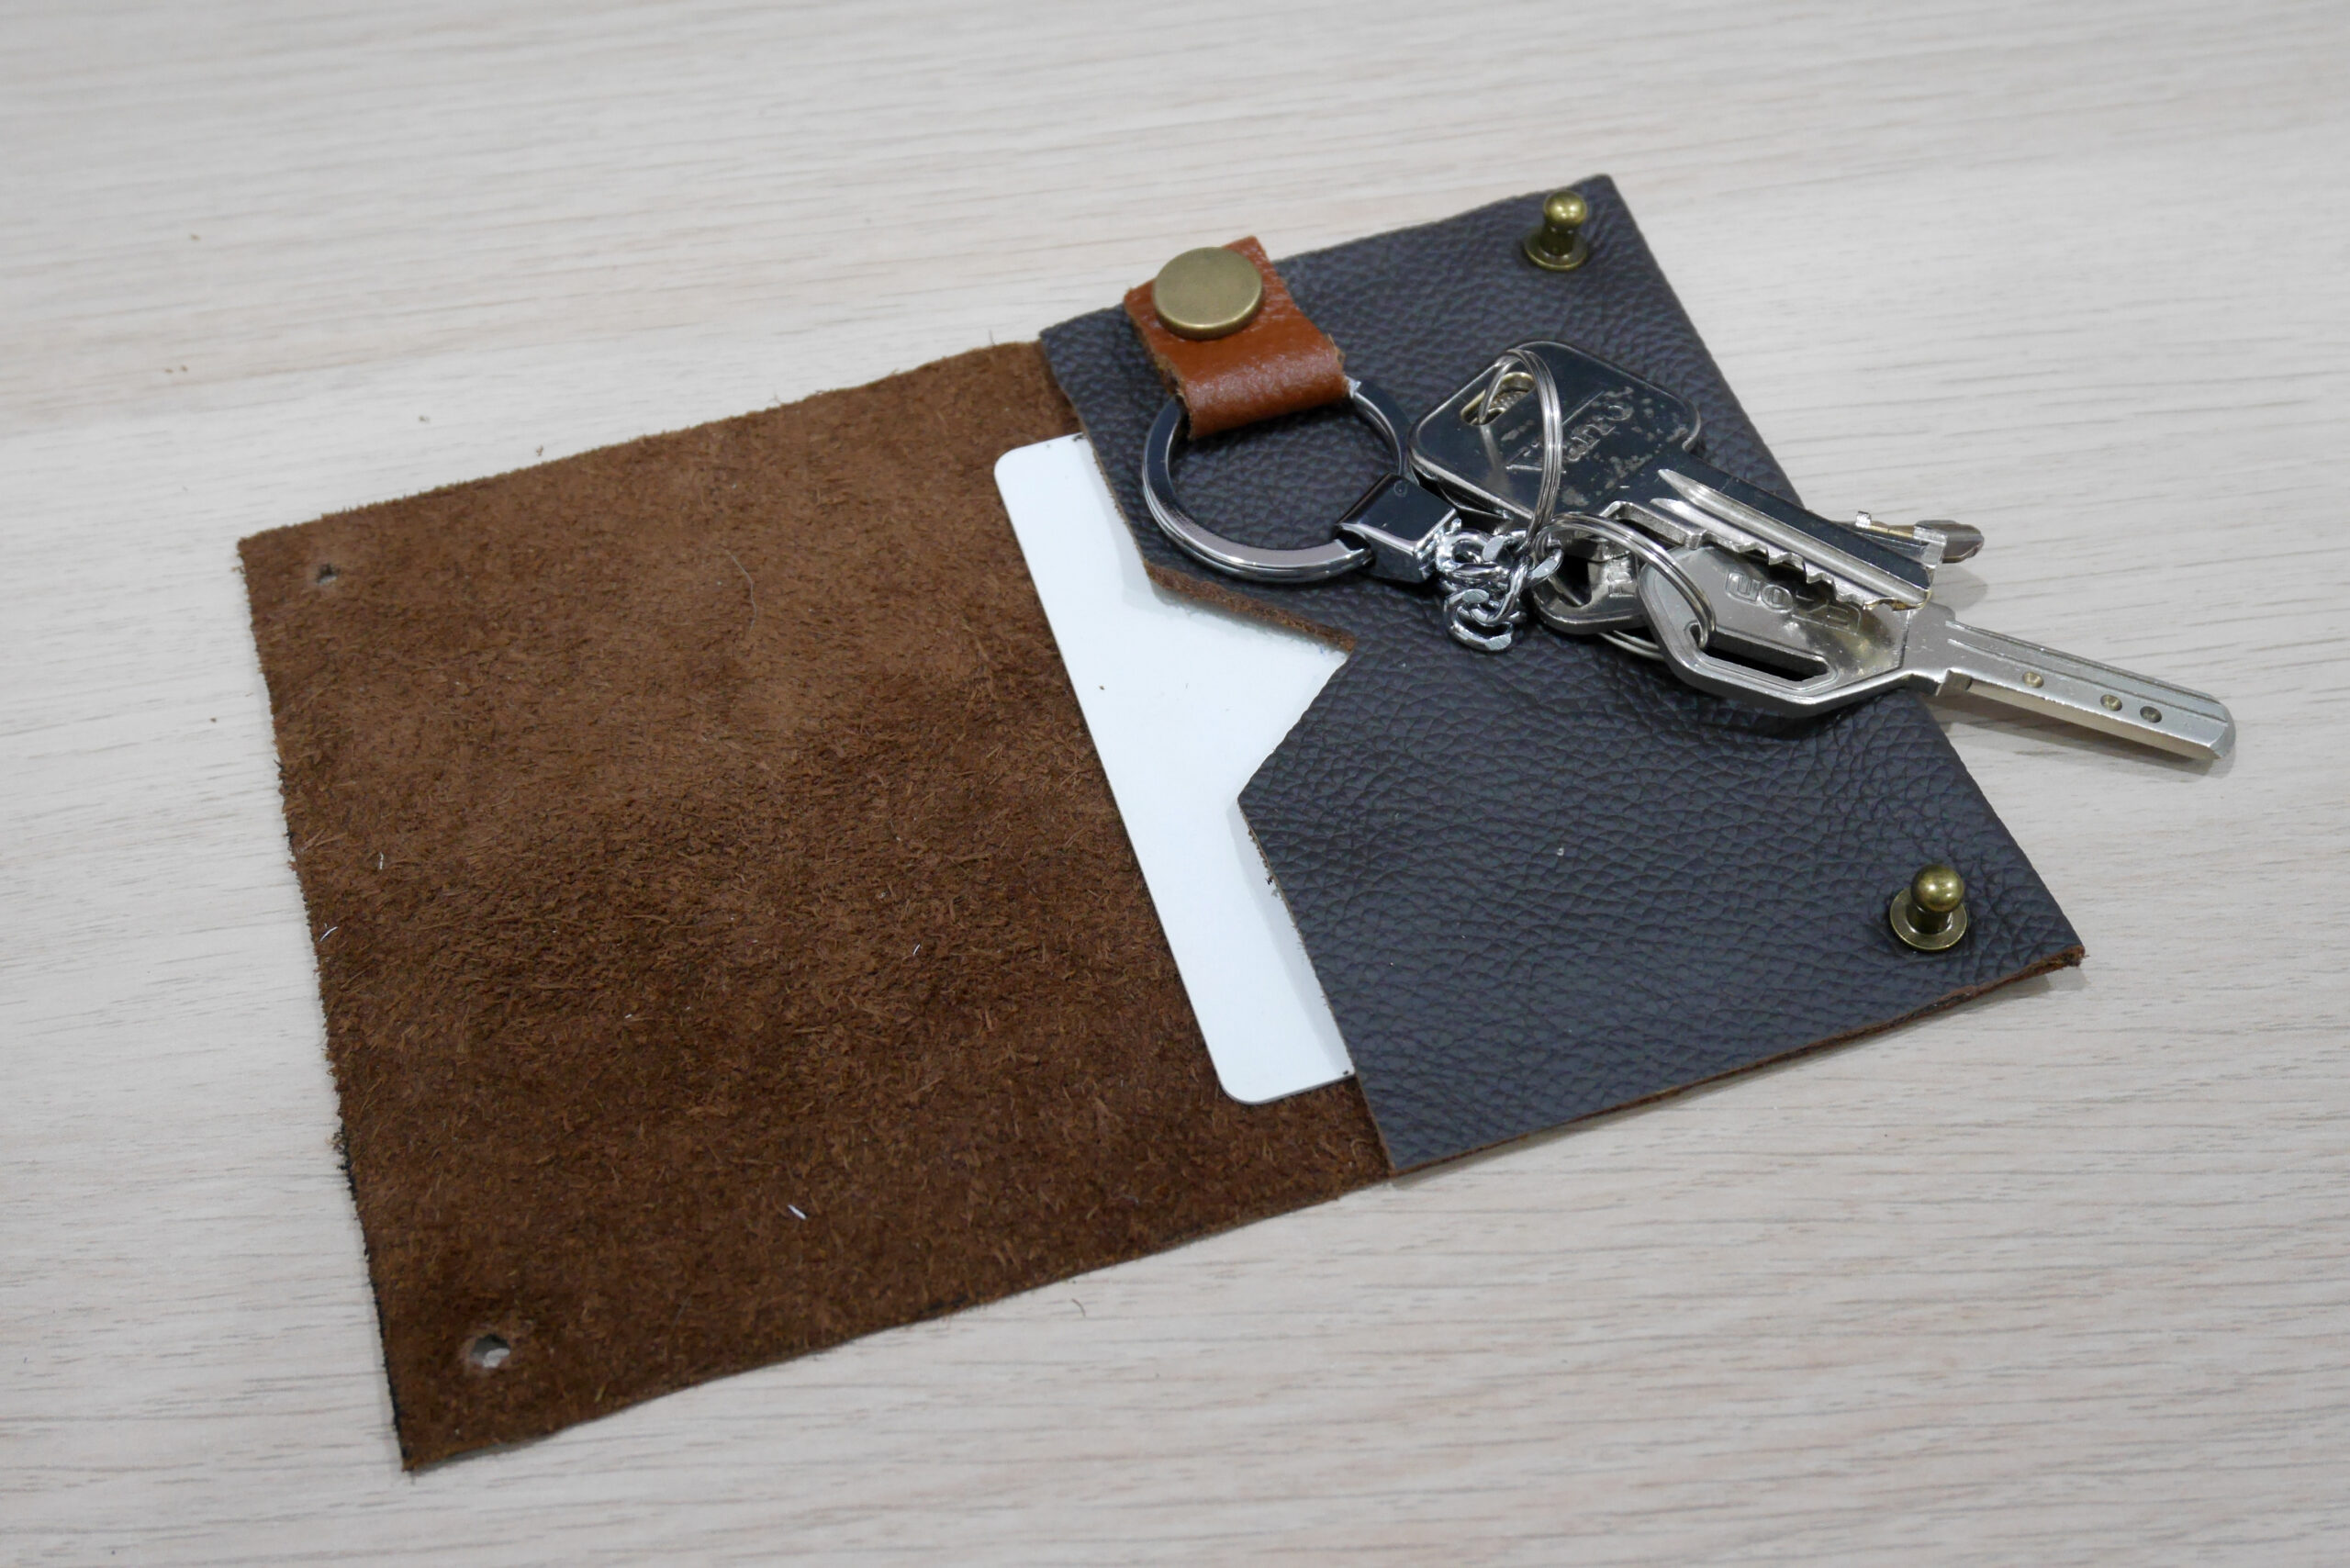 Learning leathercraft – list of resources